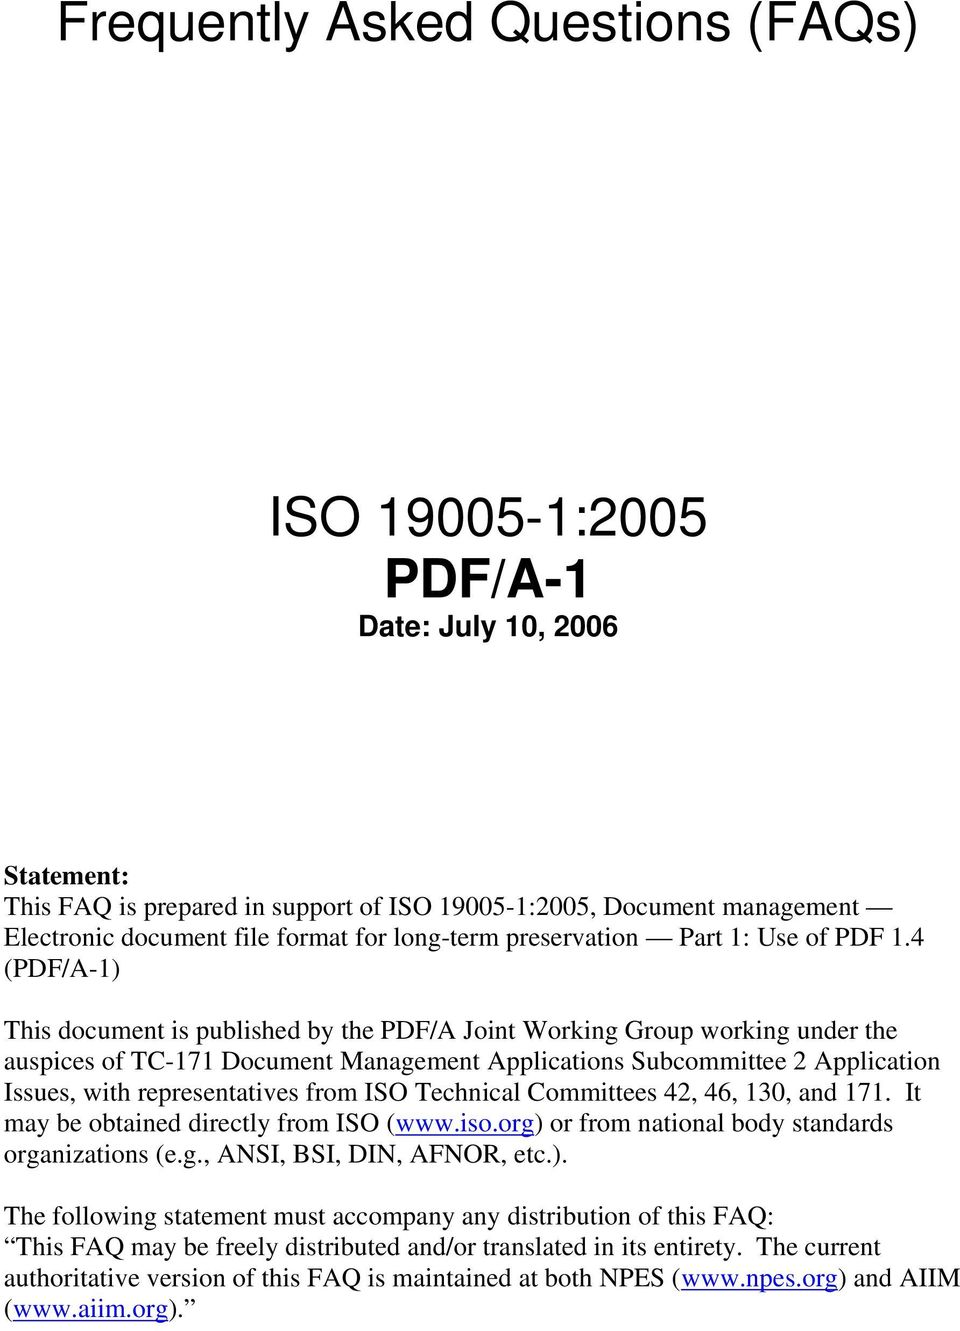 from ISO Technical Committees 42, 46, 130, and 171. It may be obtained directly from ISO (www.iso.org)